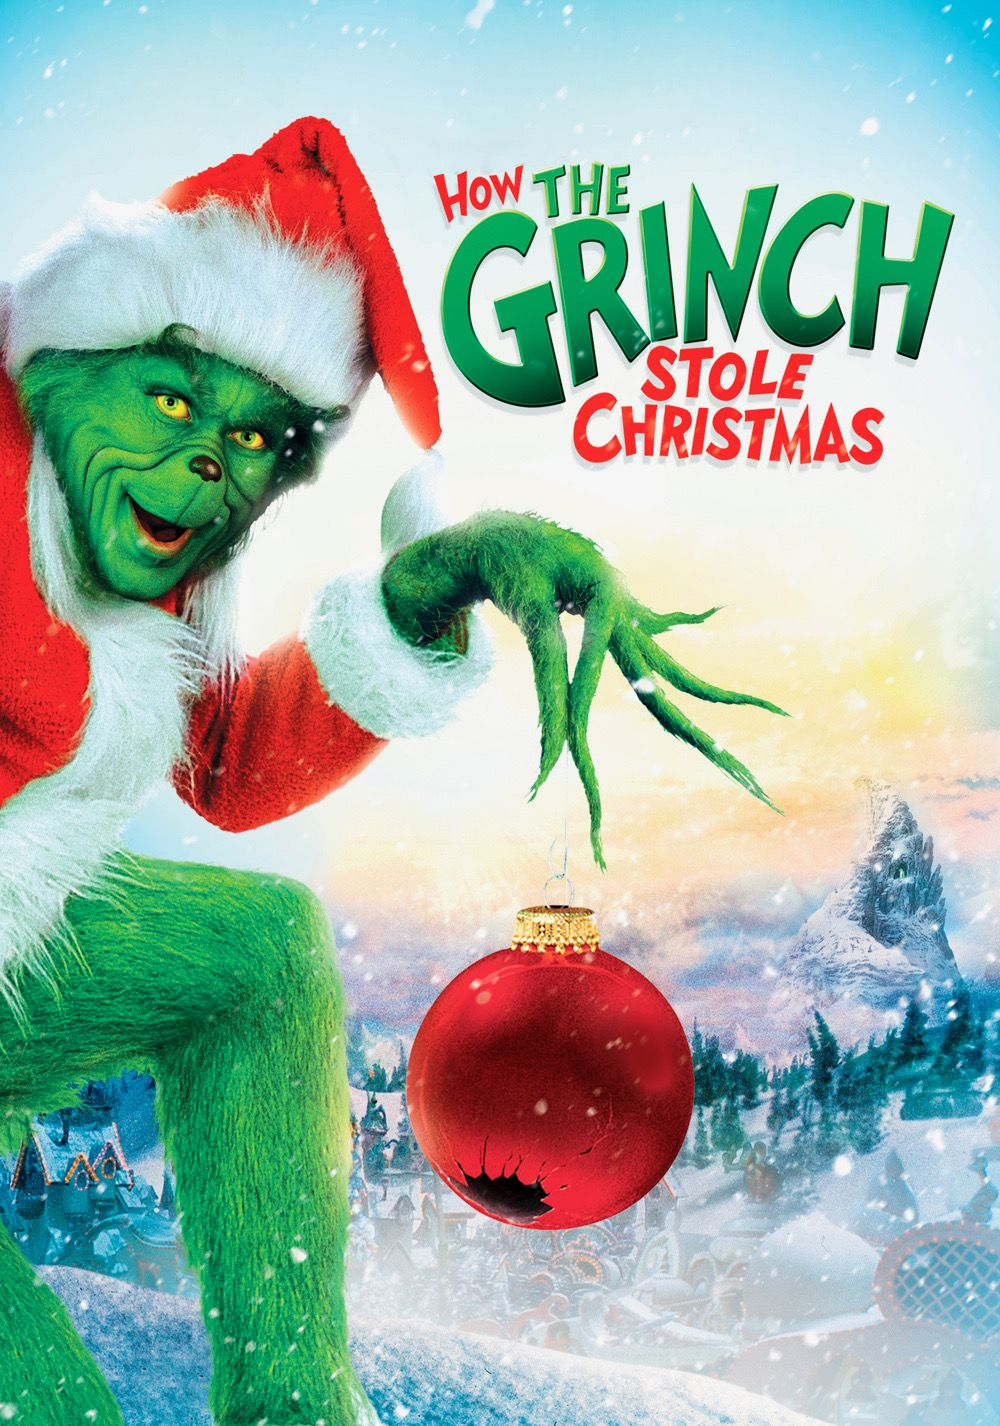 Pin by Caleb on Movies The grinch movie, Grinch stole